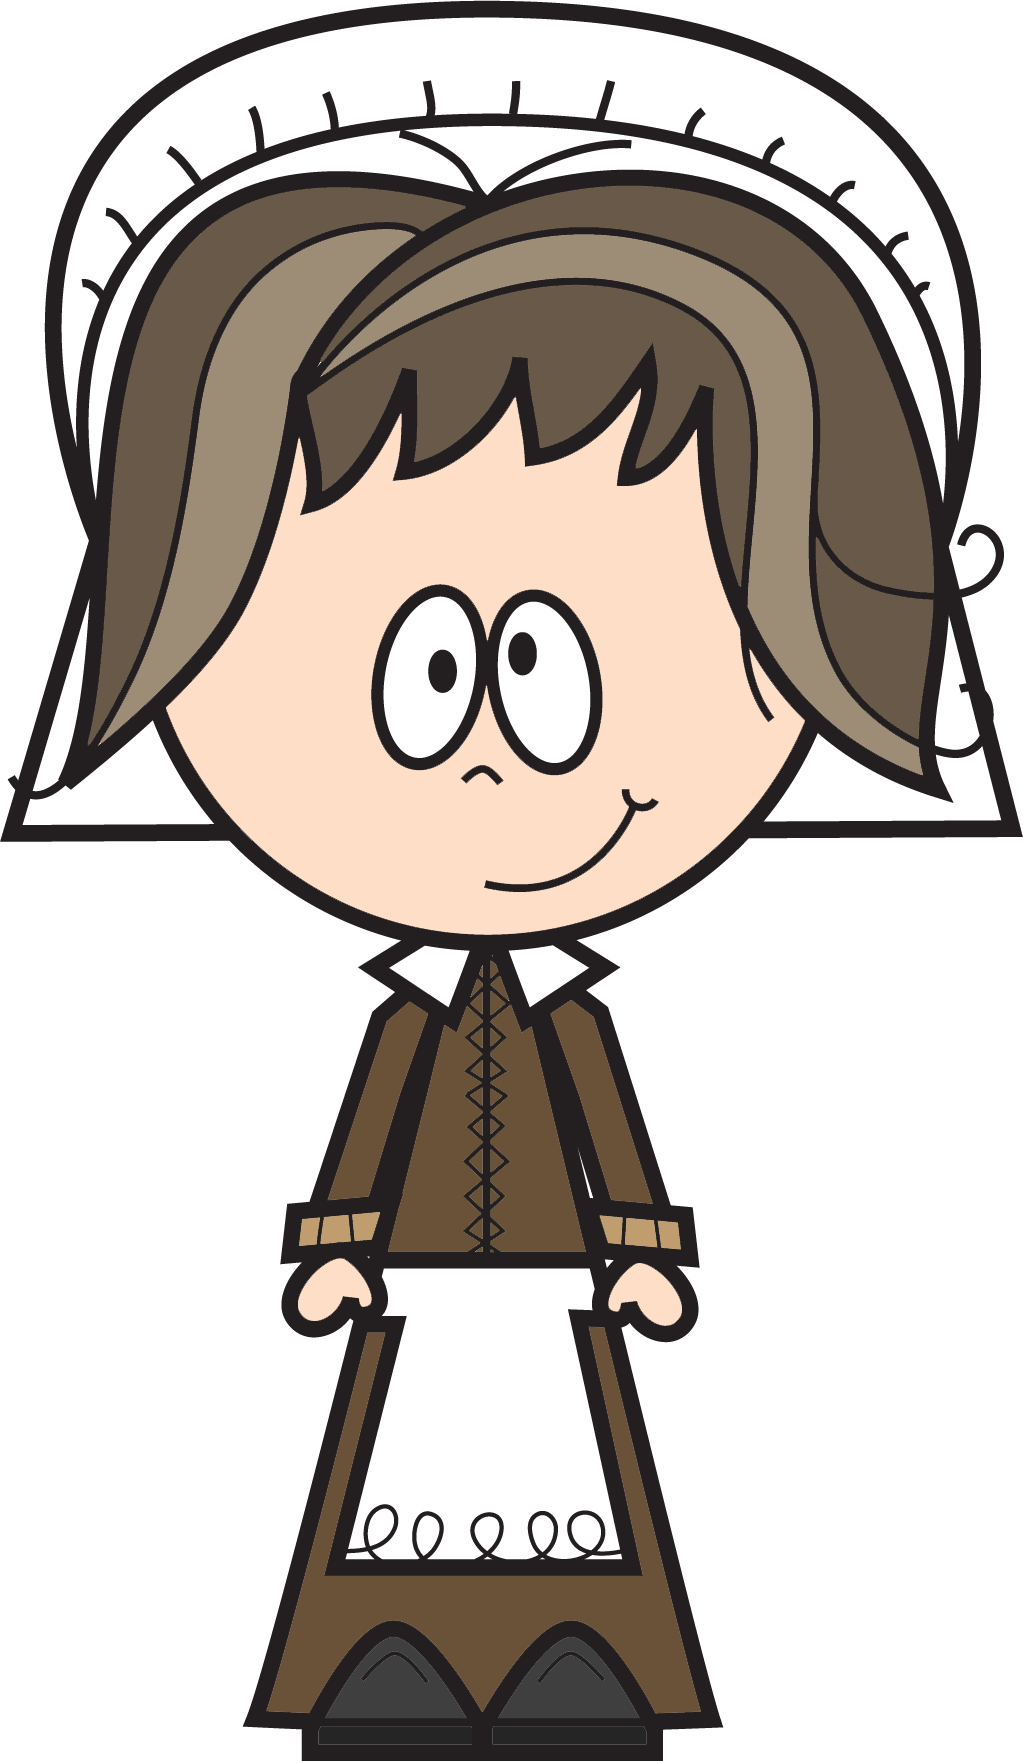 helen keller and florence nightingale muinteoir valerie rh muinteoirvalerie com Helen Keller Pictures in Color Dork Diaries Clip Art